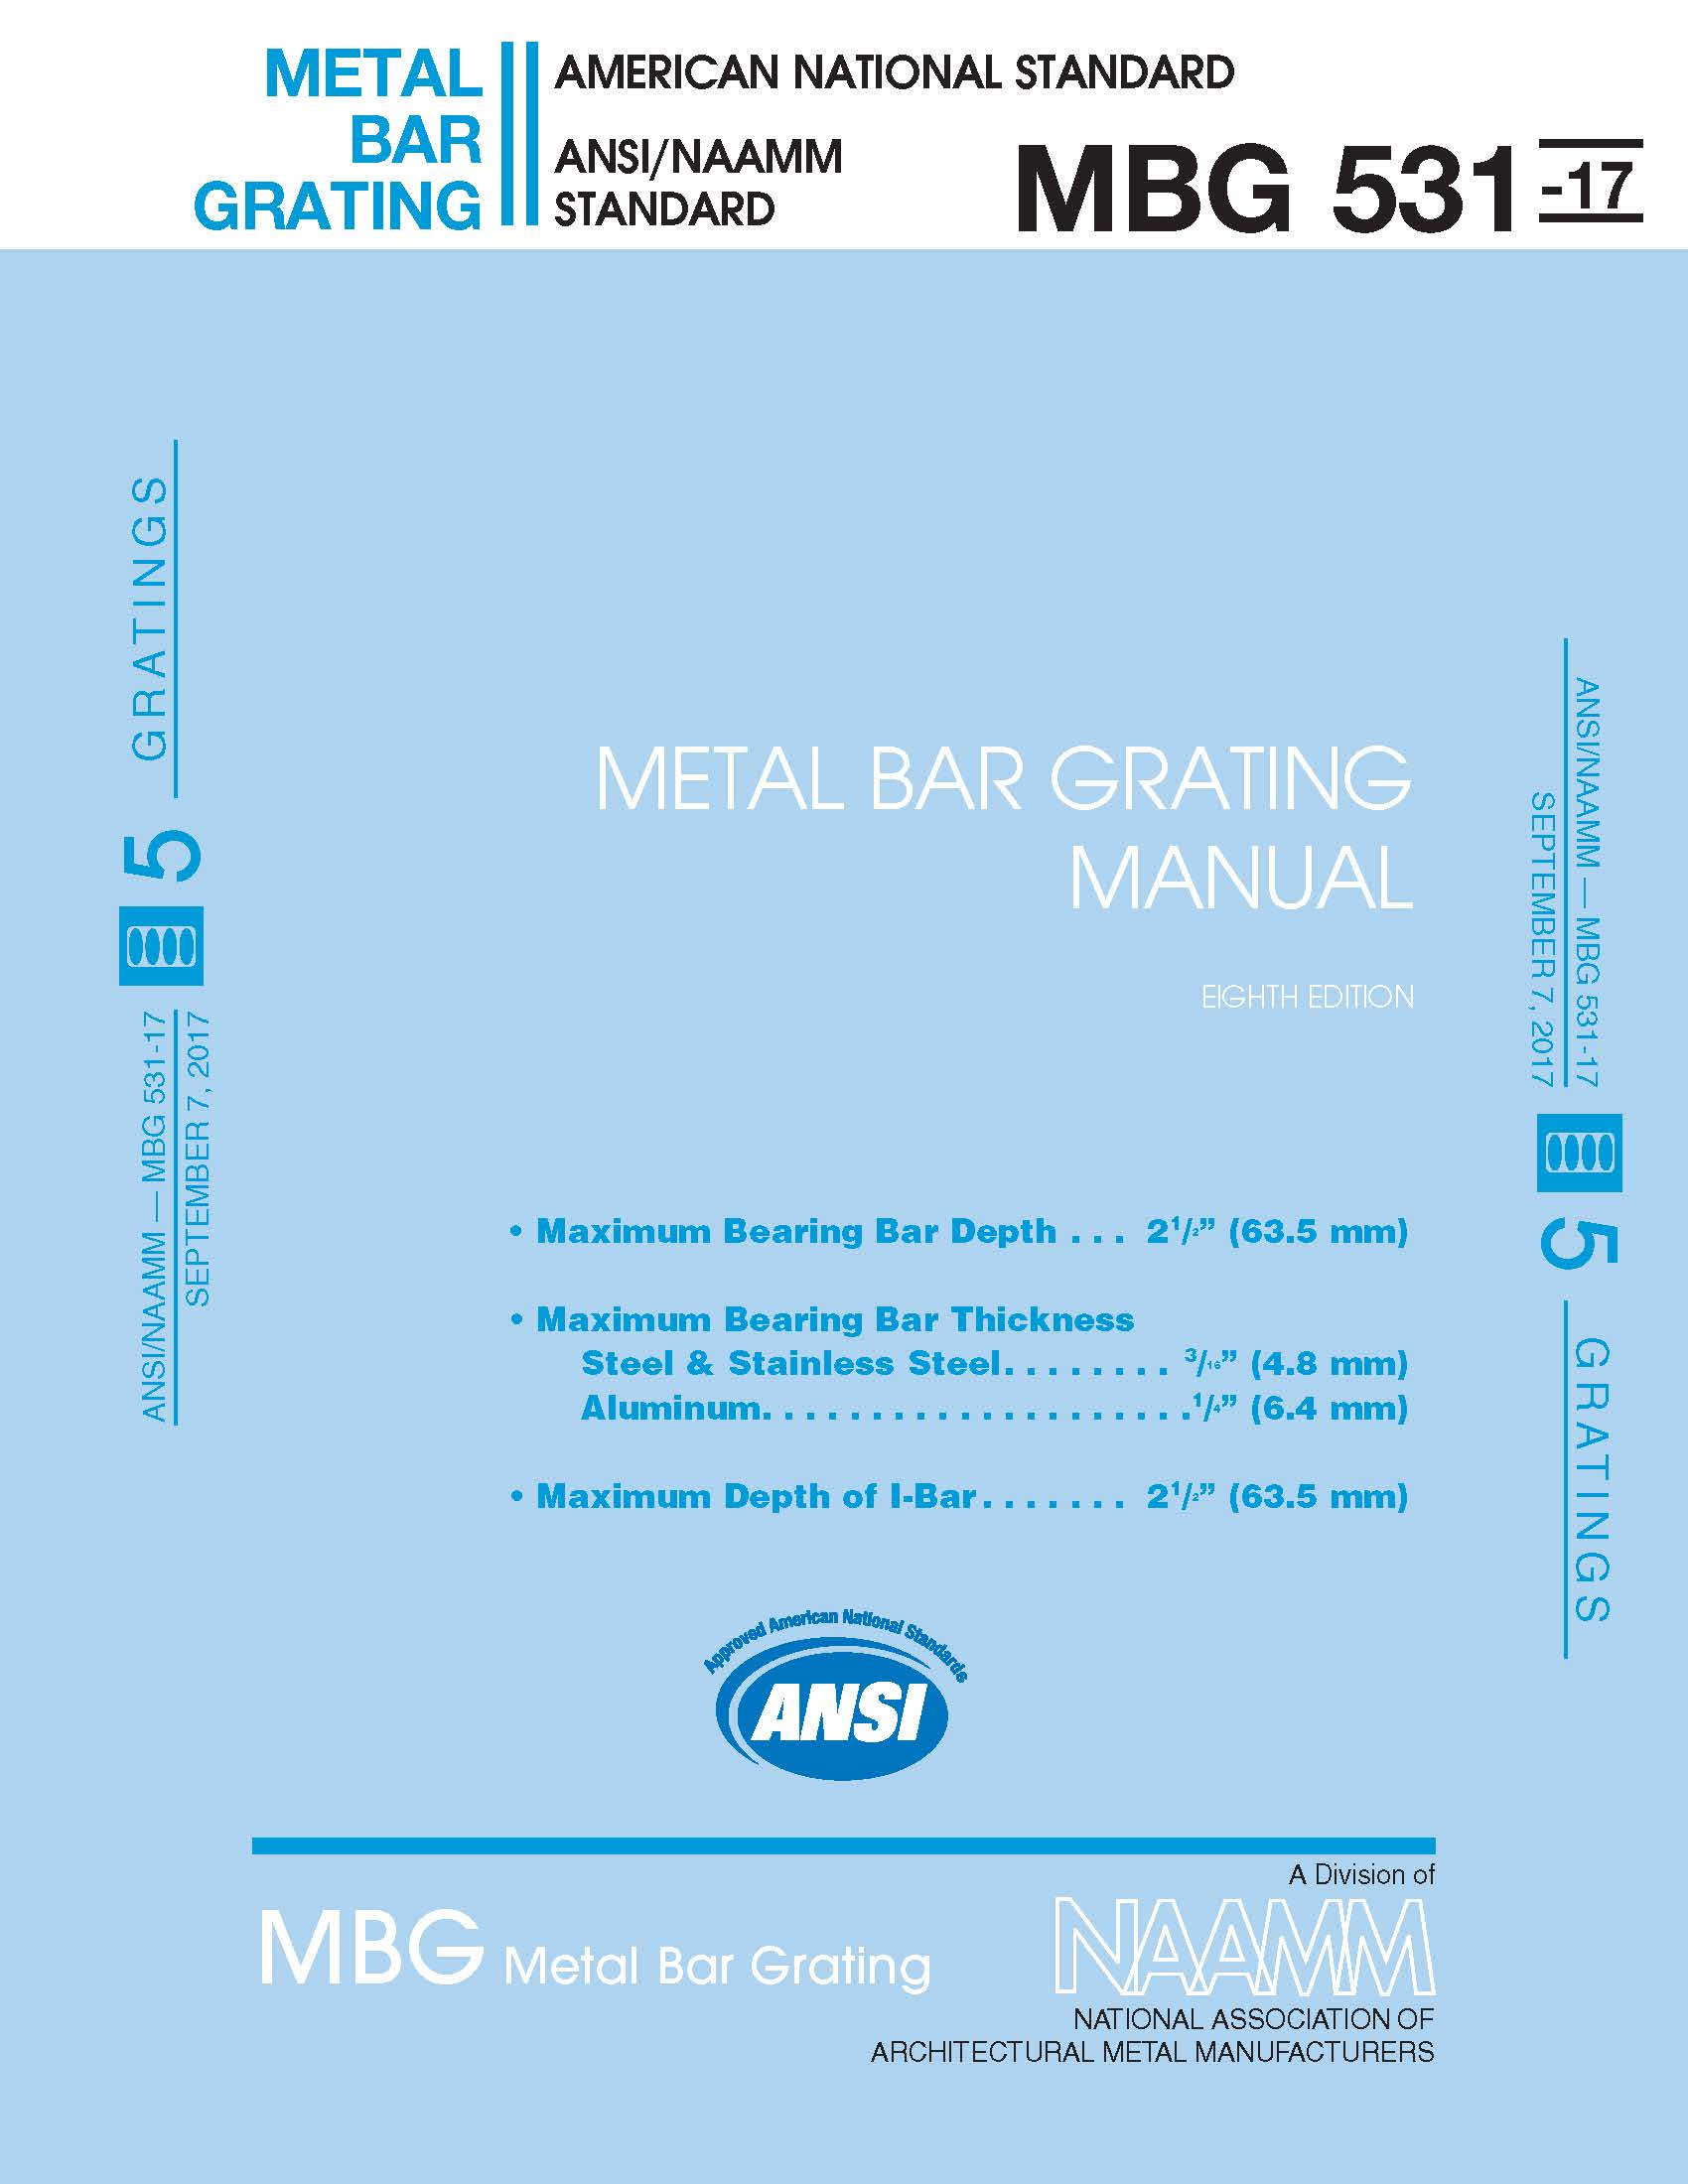 Metal Bar Grating Manual